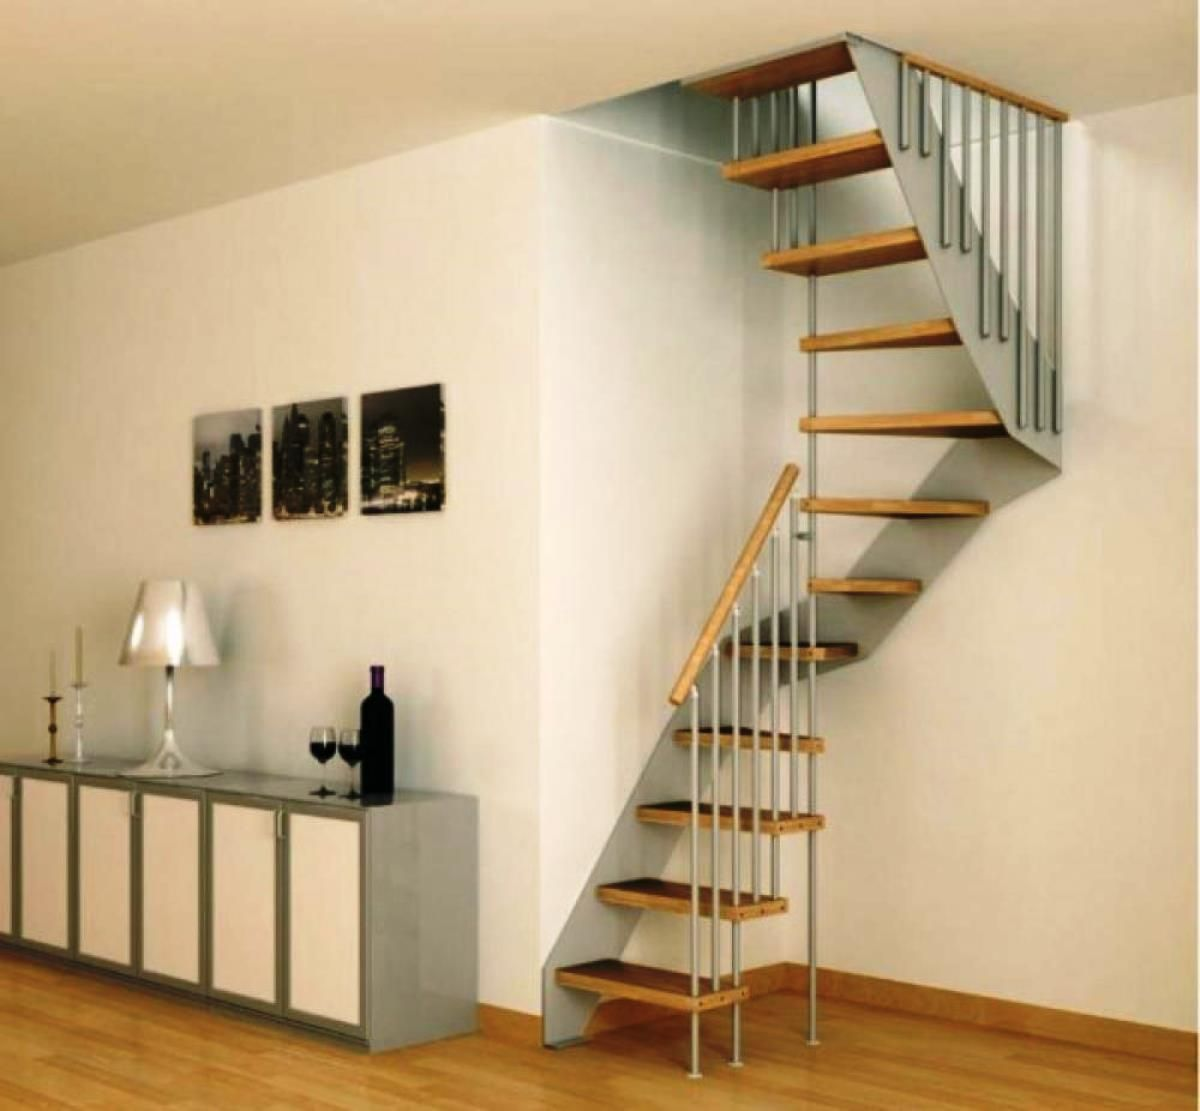 Staircase Designs For Small Spaces Spiral Staircase Small Space Google Search Steps